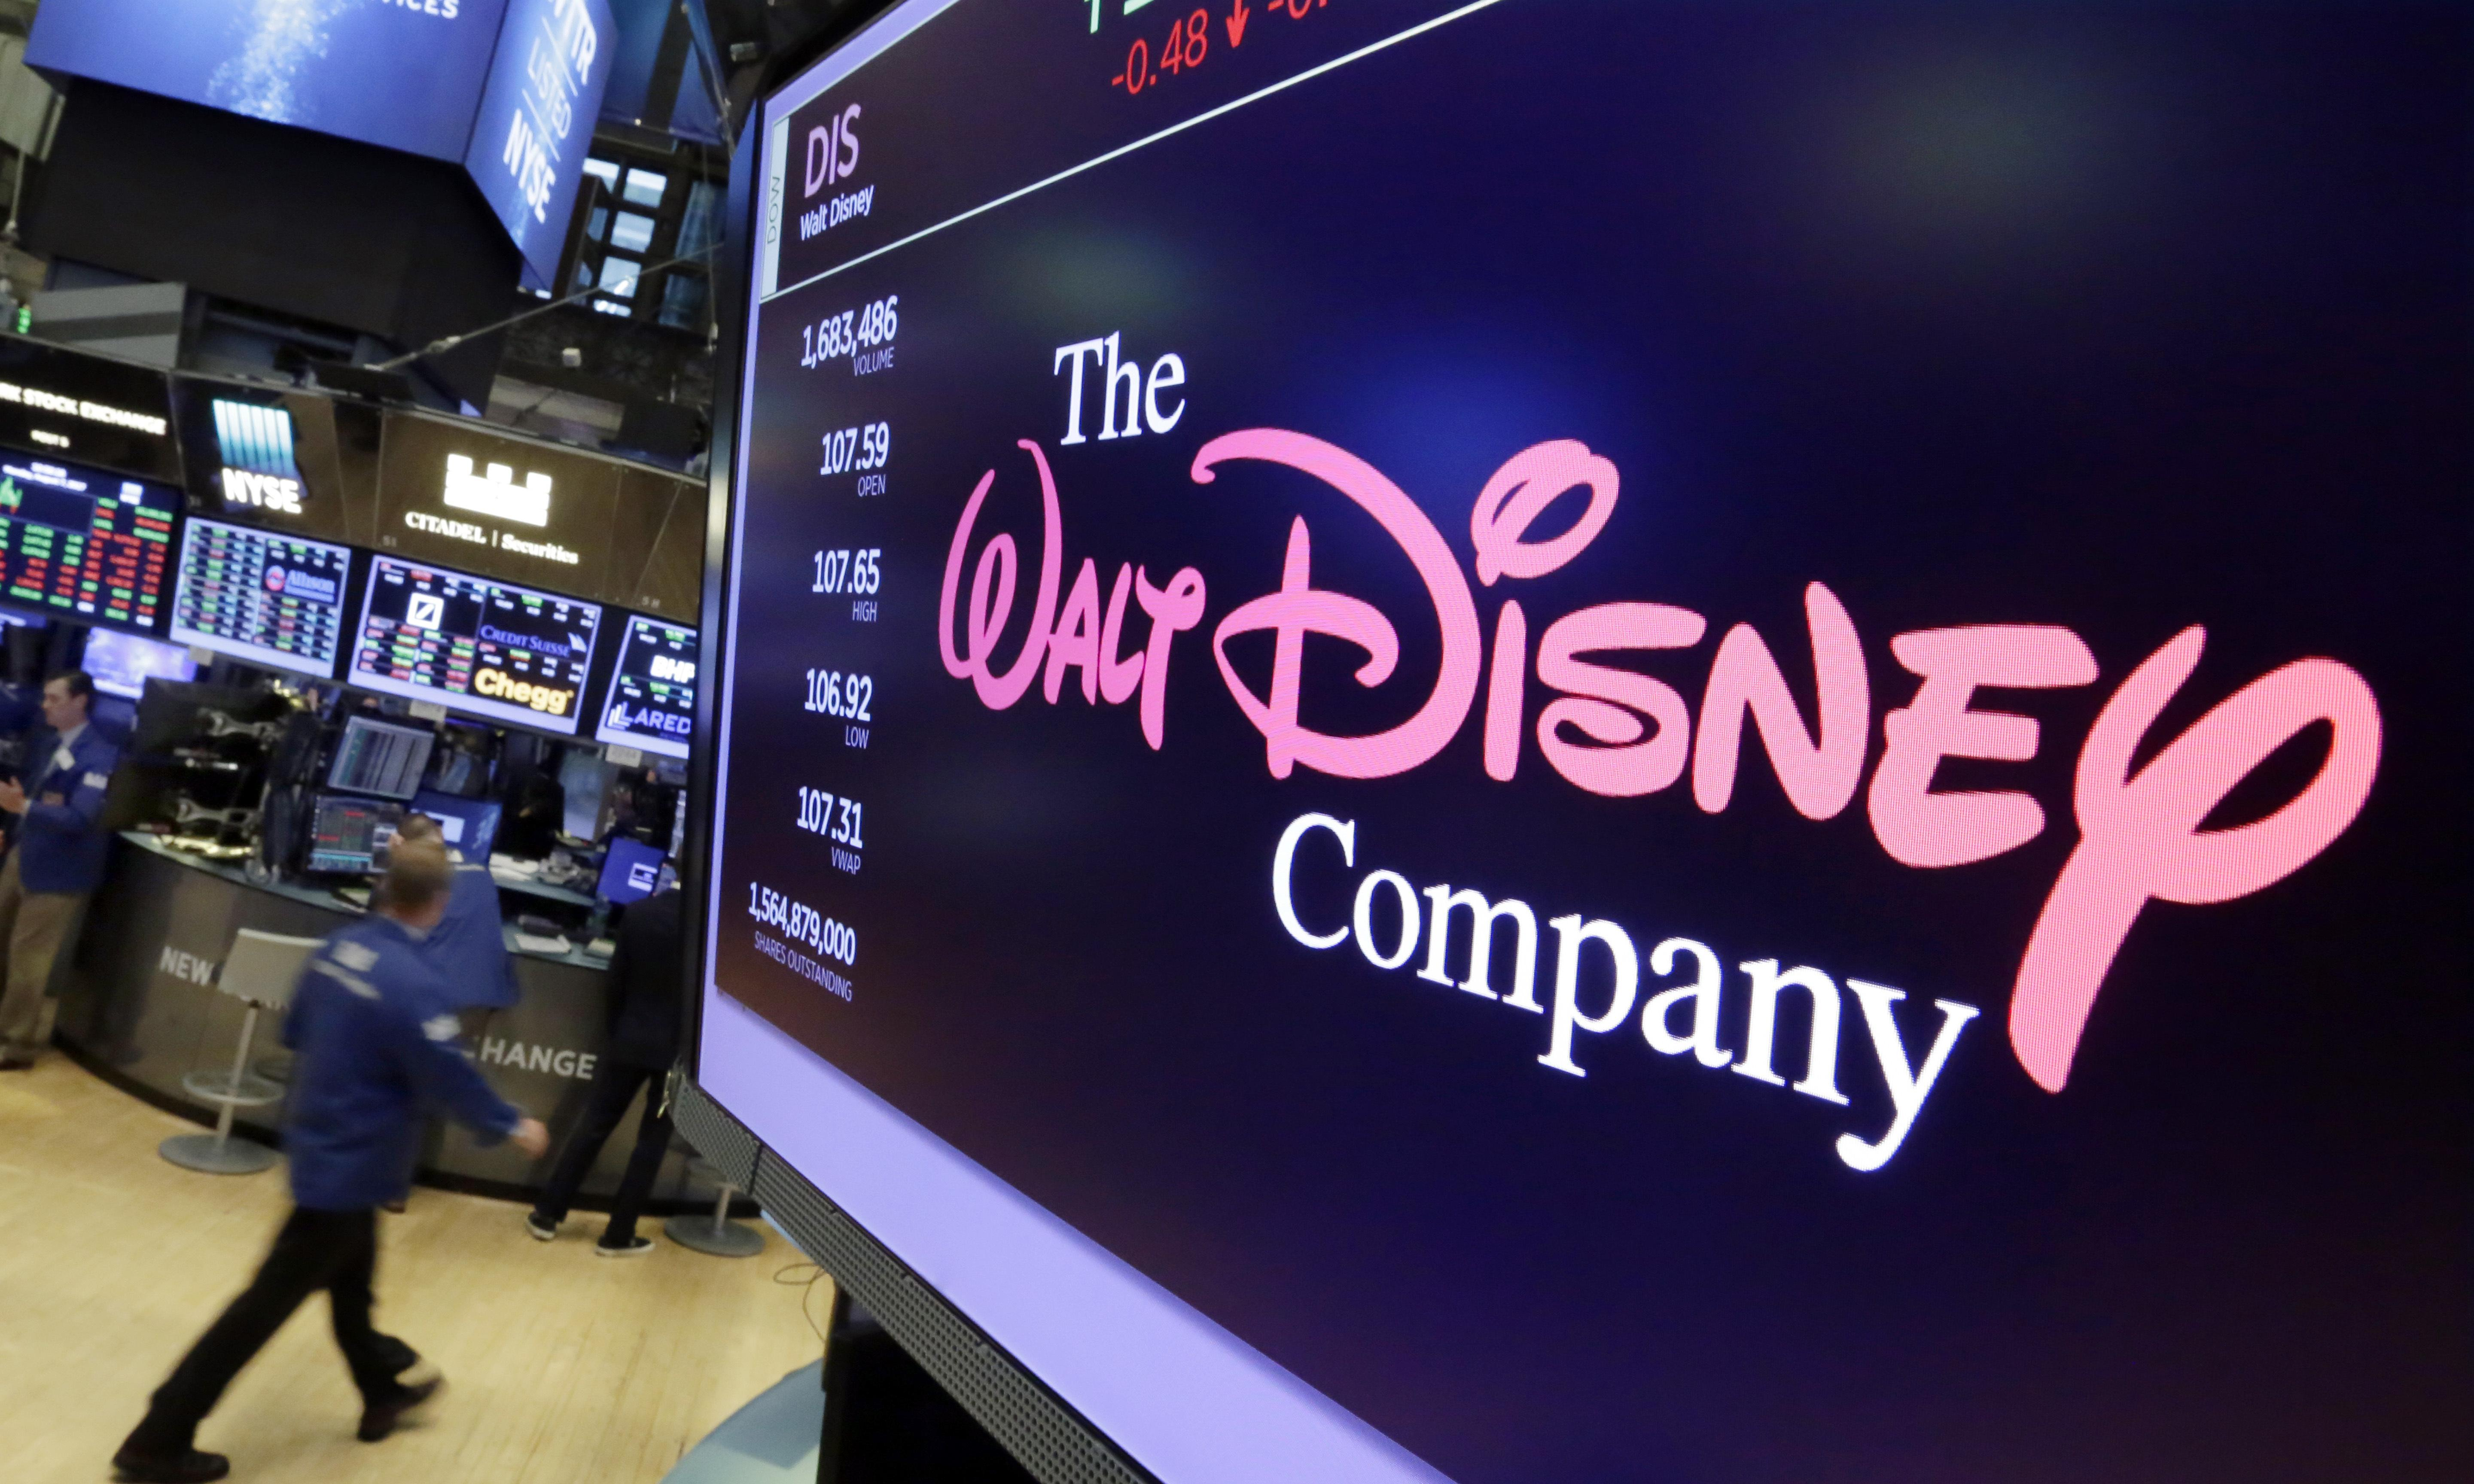 'Underpaid and undervalued': 10 women claim systemic discrimination at Disney